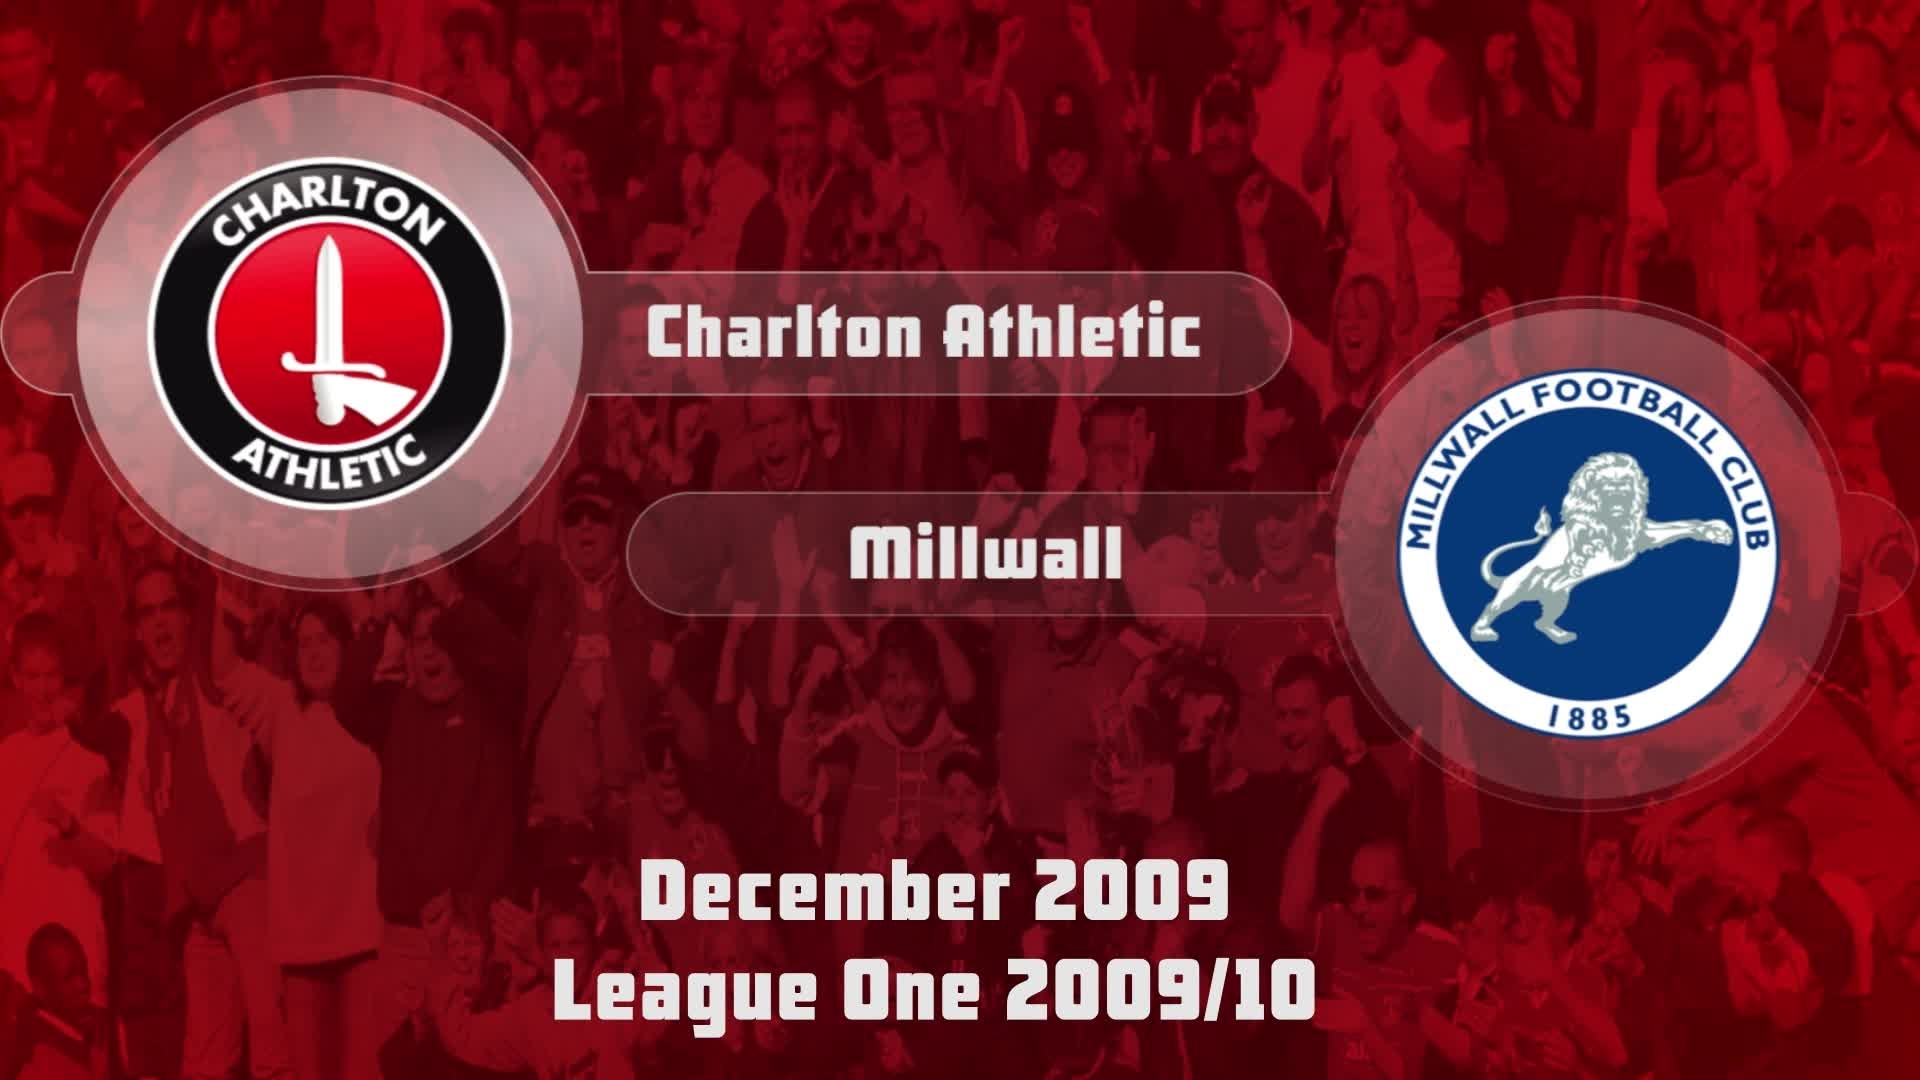 26 HIGHLIGHTS | Charlton 4 Millwall 4 (Dec 2009)